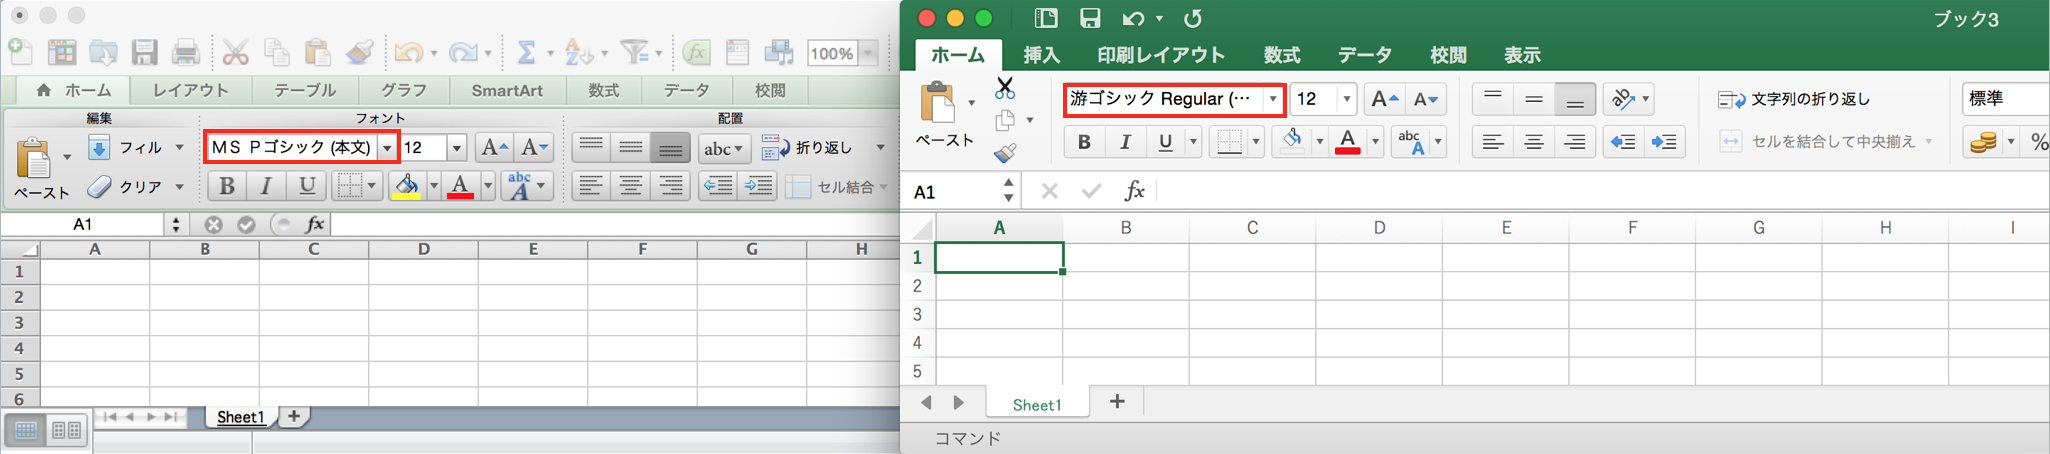 Excel2016とExcel2011のデフォルトフォント